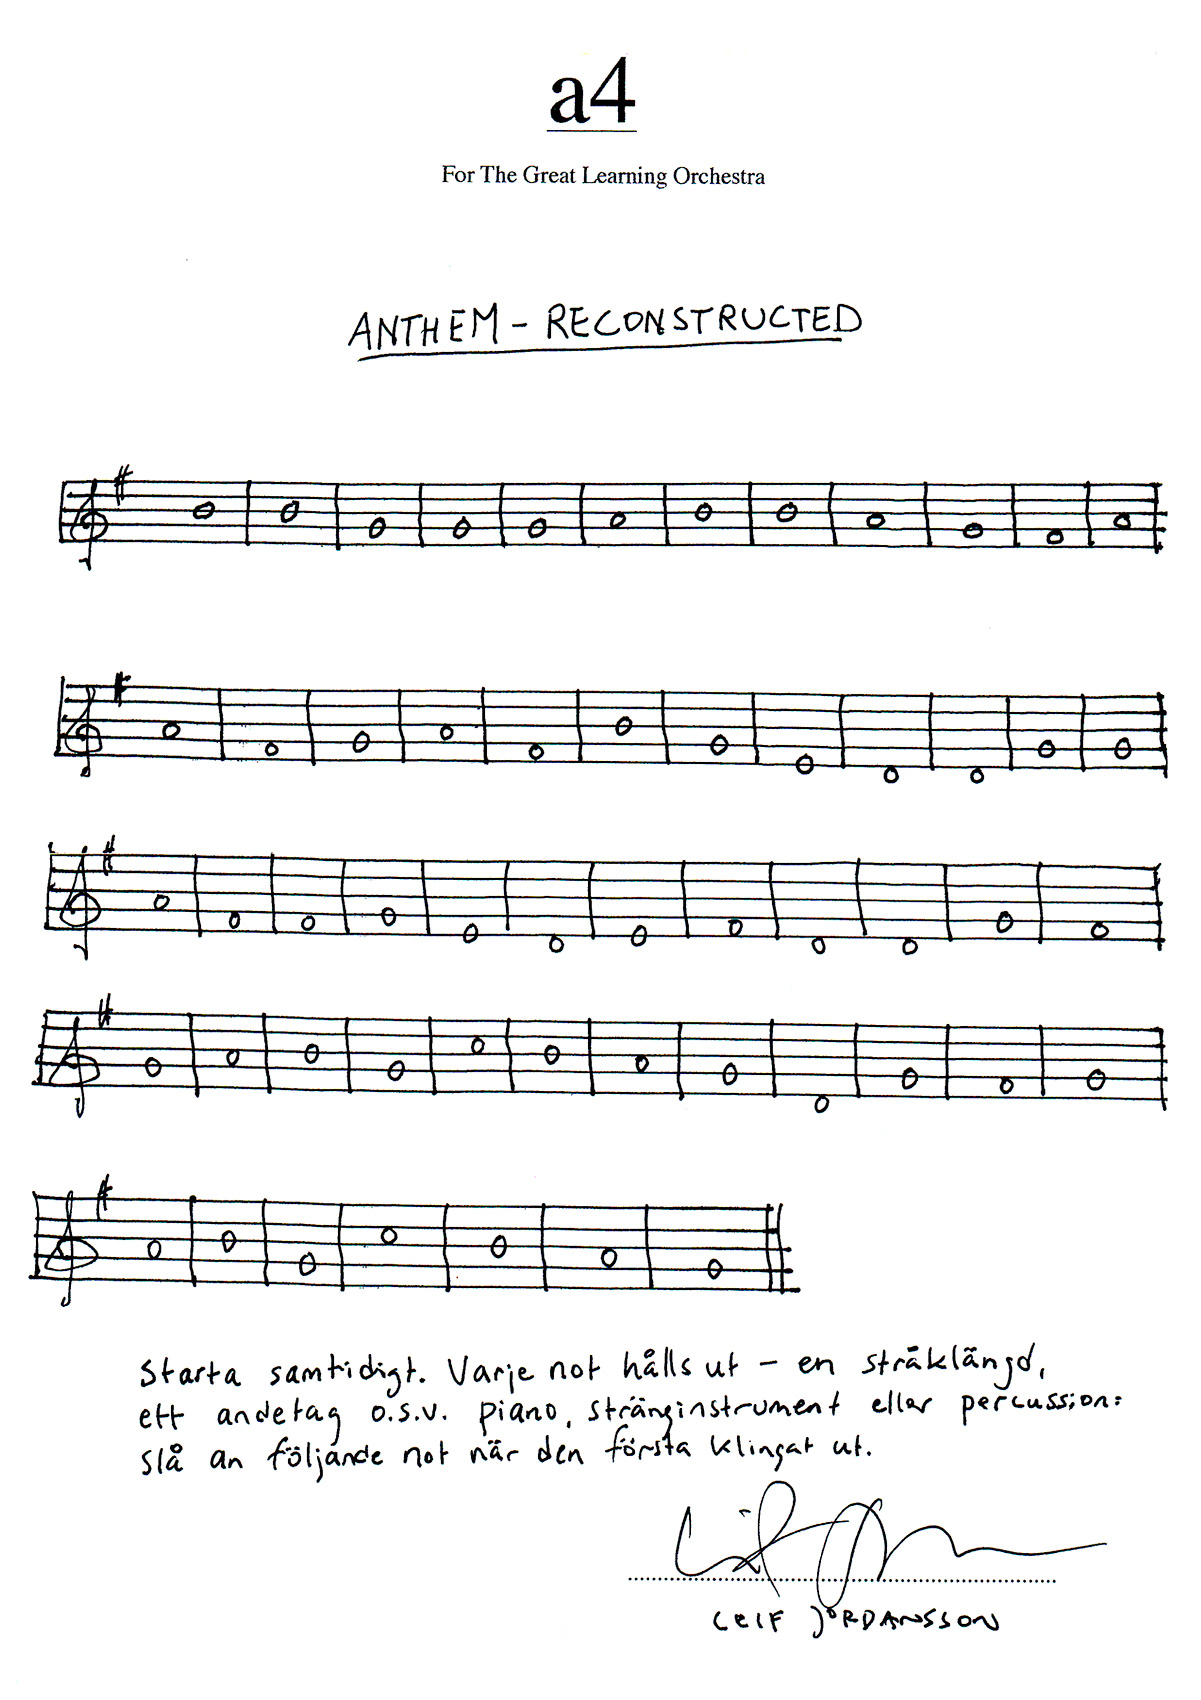 Anthem-reconstructed